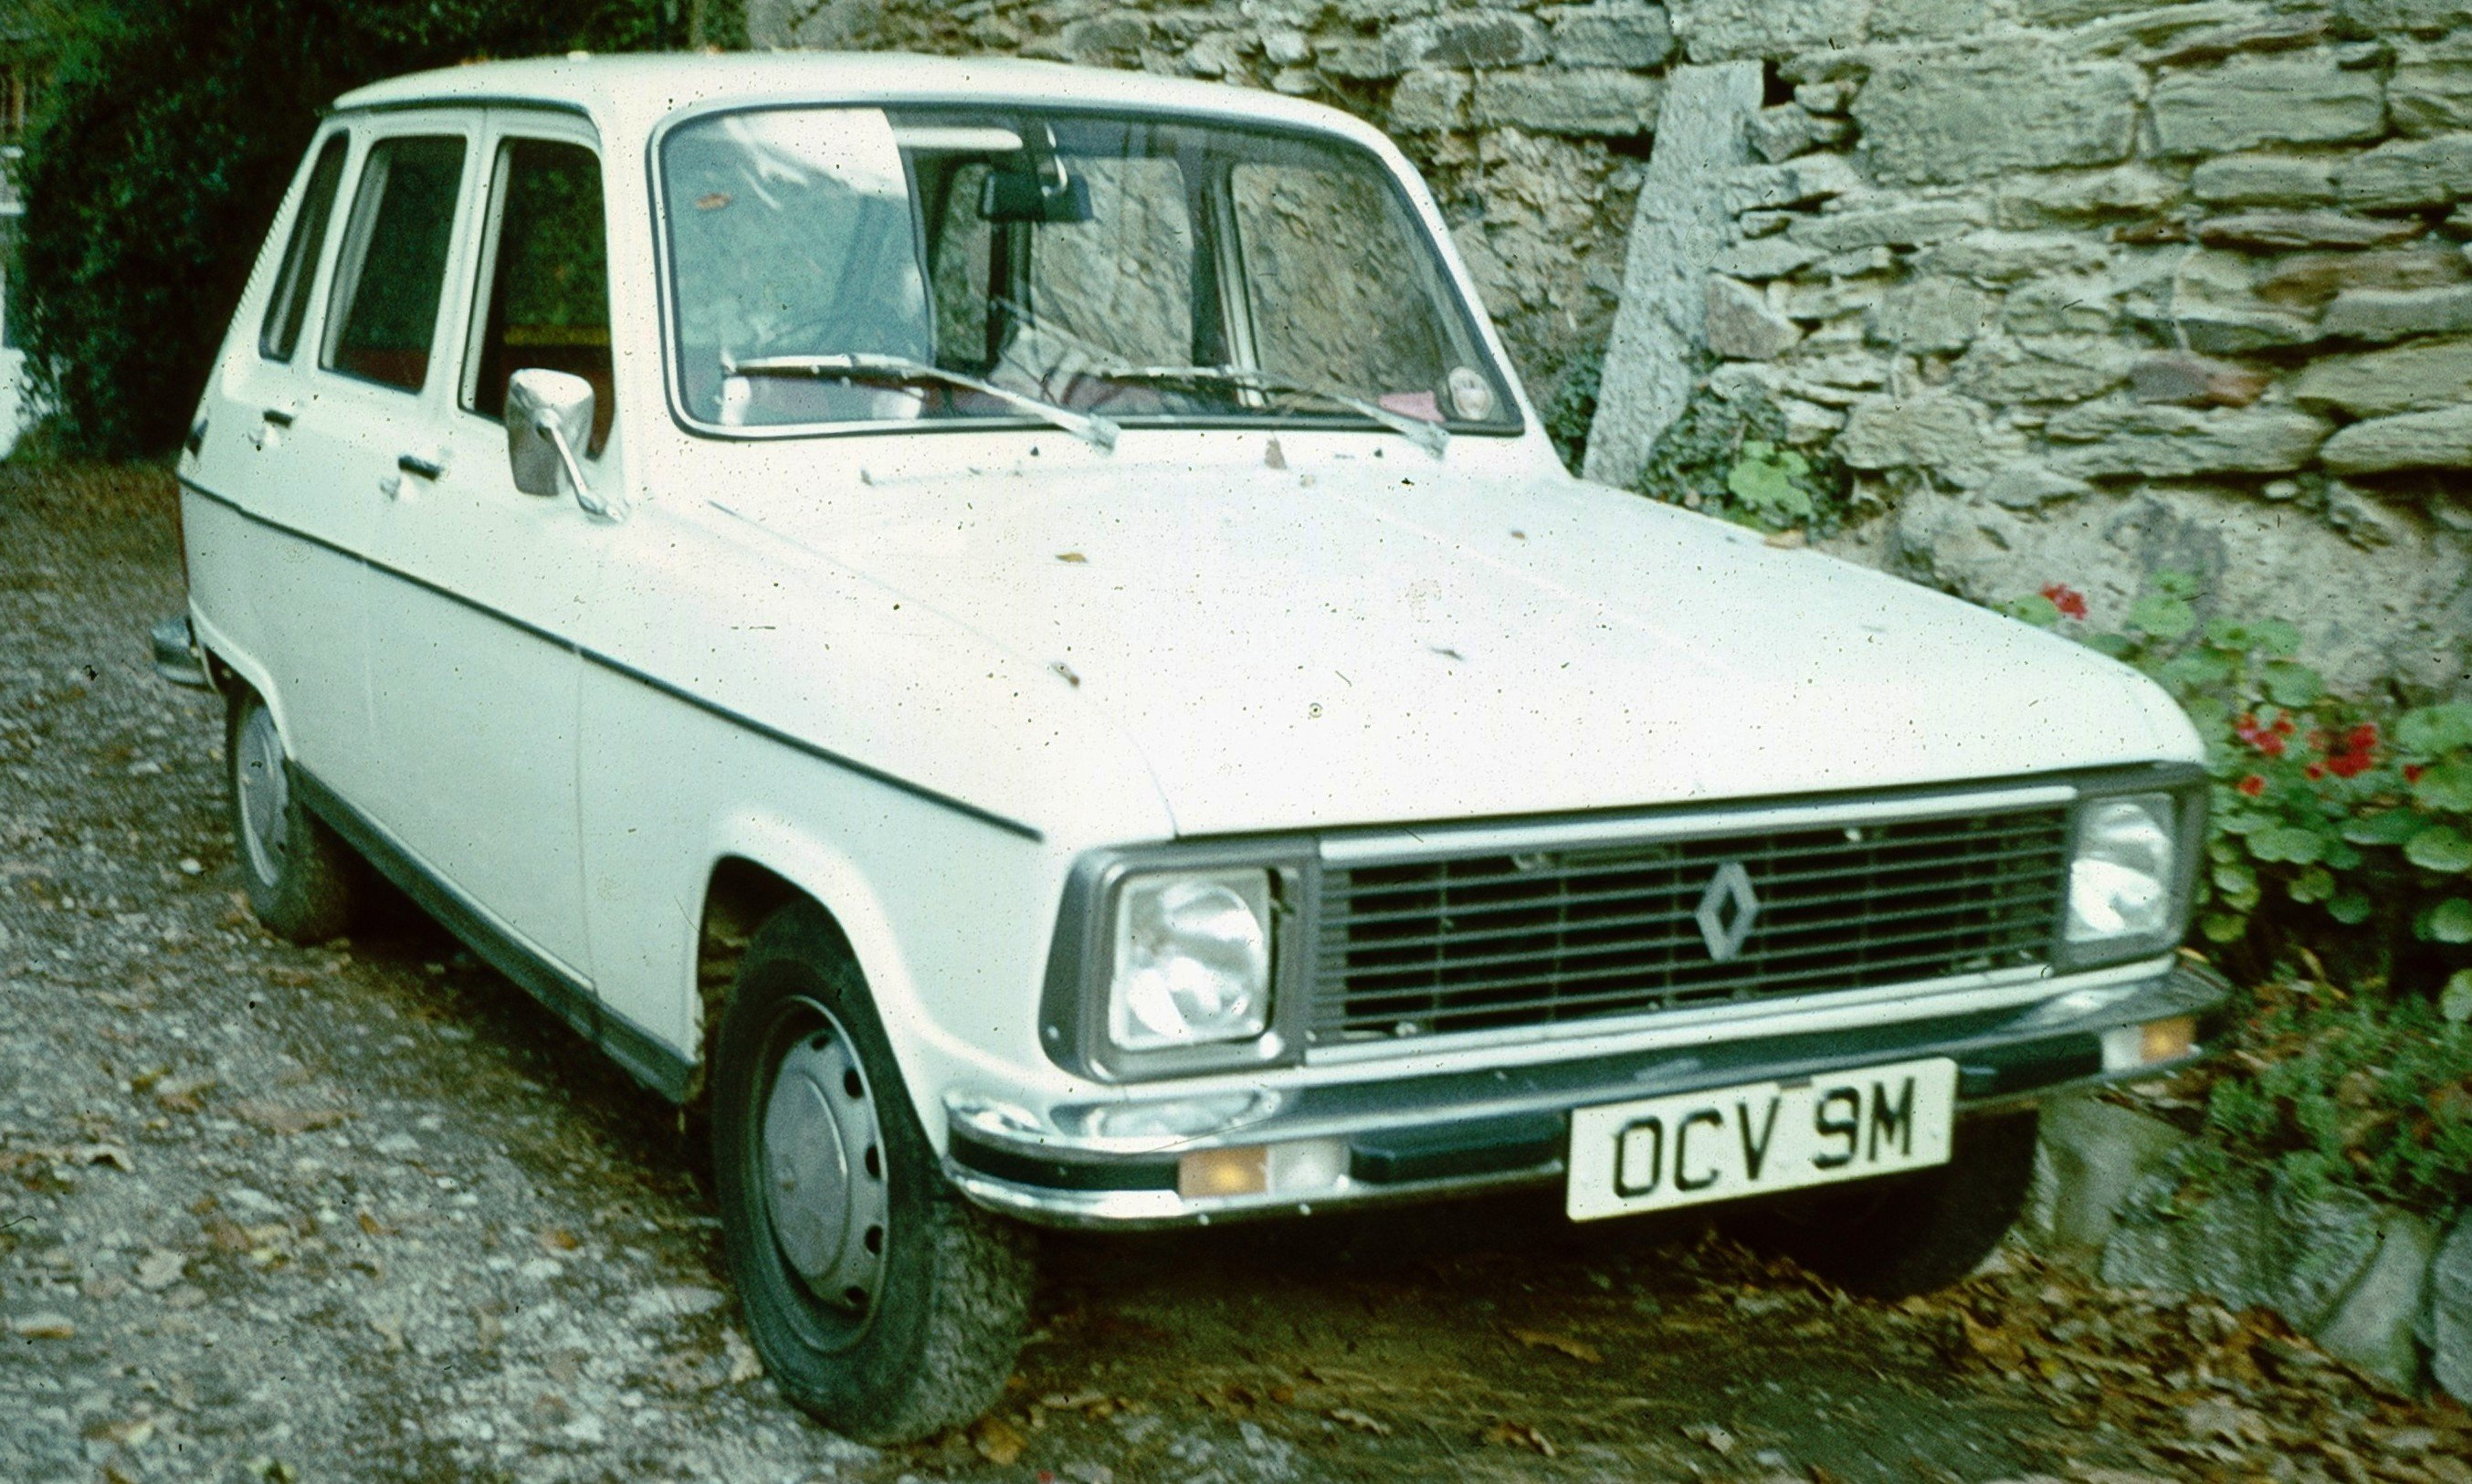 http://auto-database.com/image/renault-6-pictures-6938.jpg